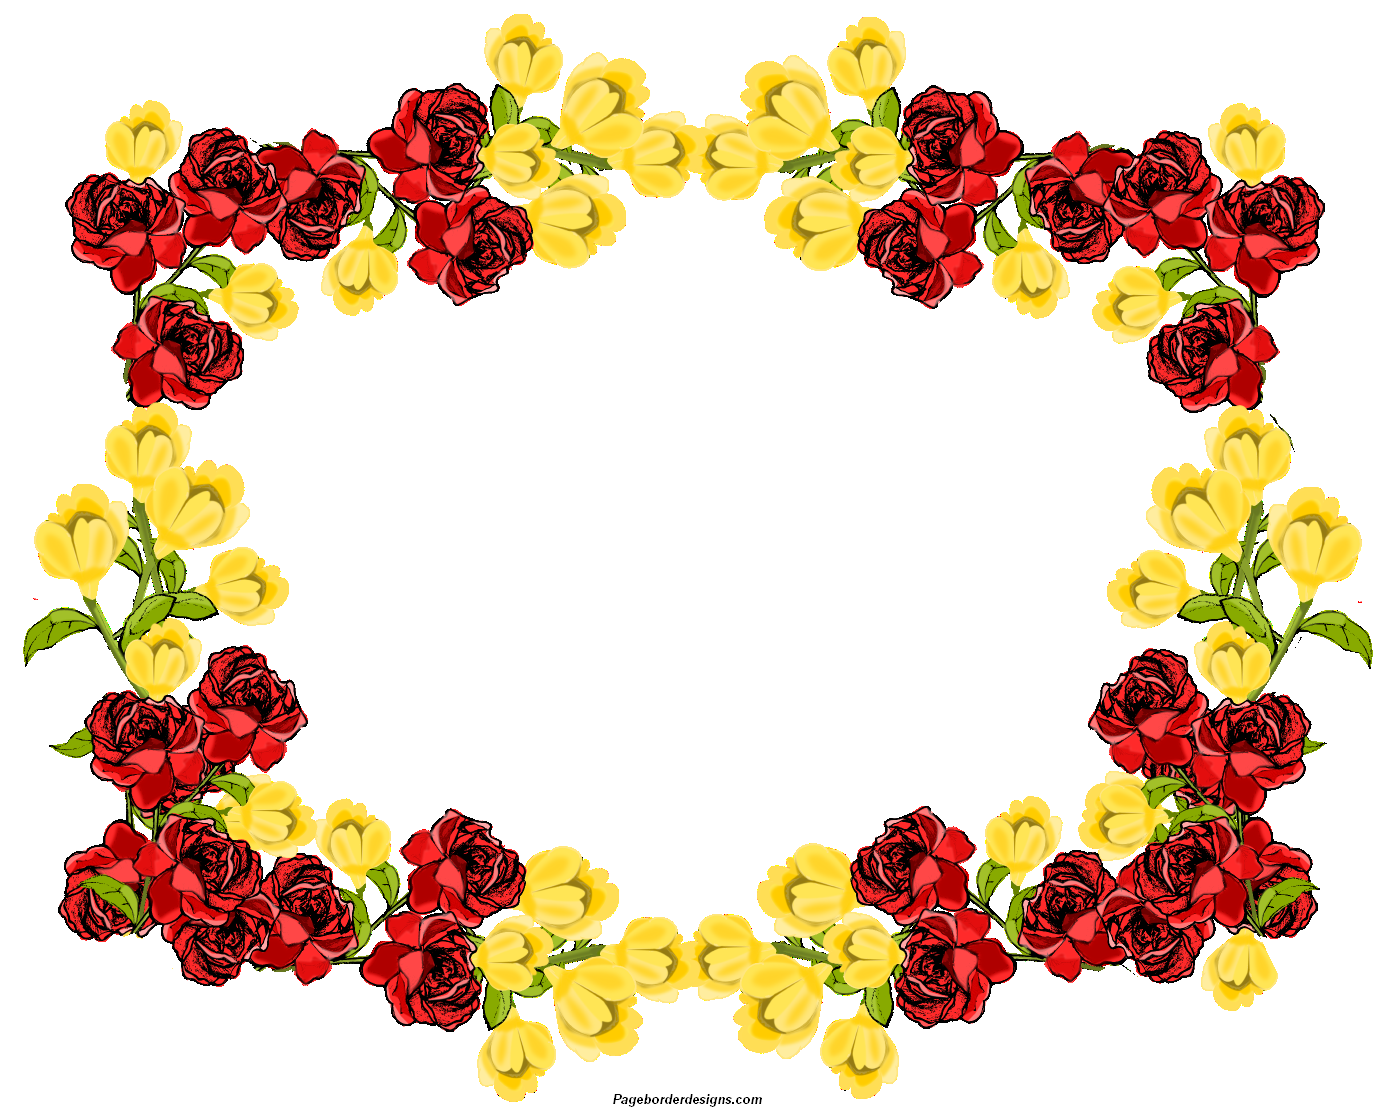 Gold yellow flowers clipart #11